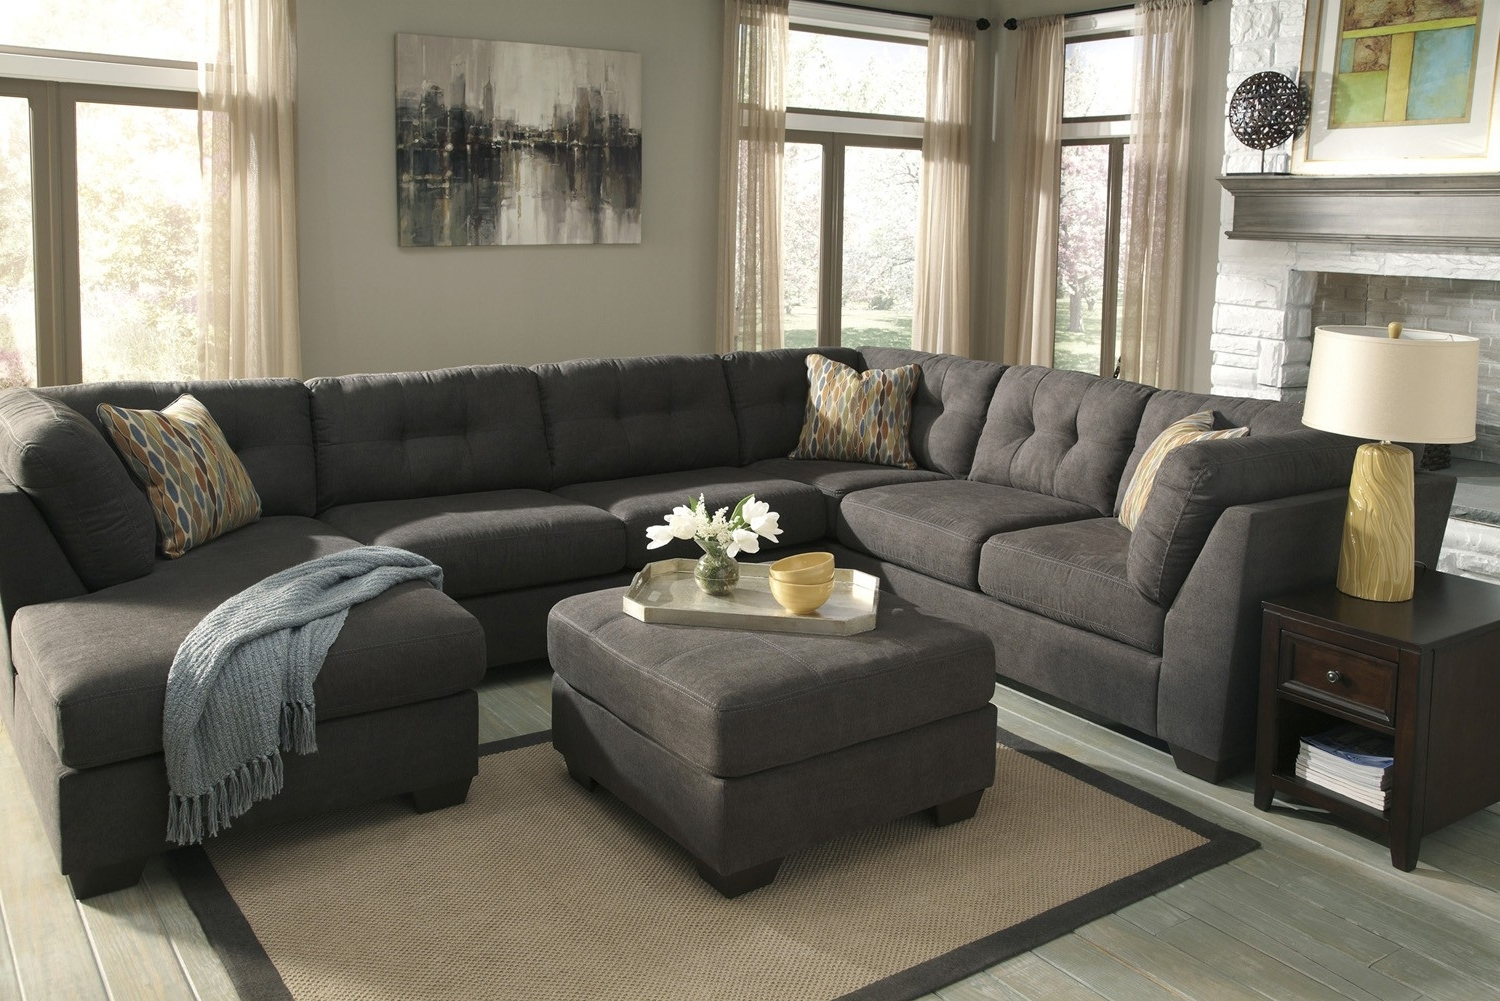 Latest Delta City Steel 3 Piece Sectional Sofa With Right Arm Facing For 3 Piece Sectional Sleeper Sofas (View 7 of 20)